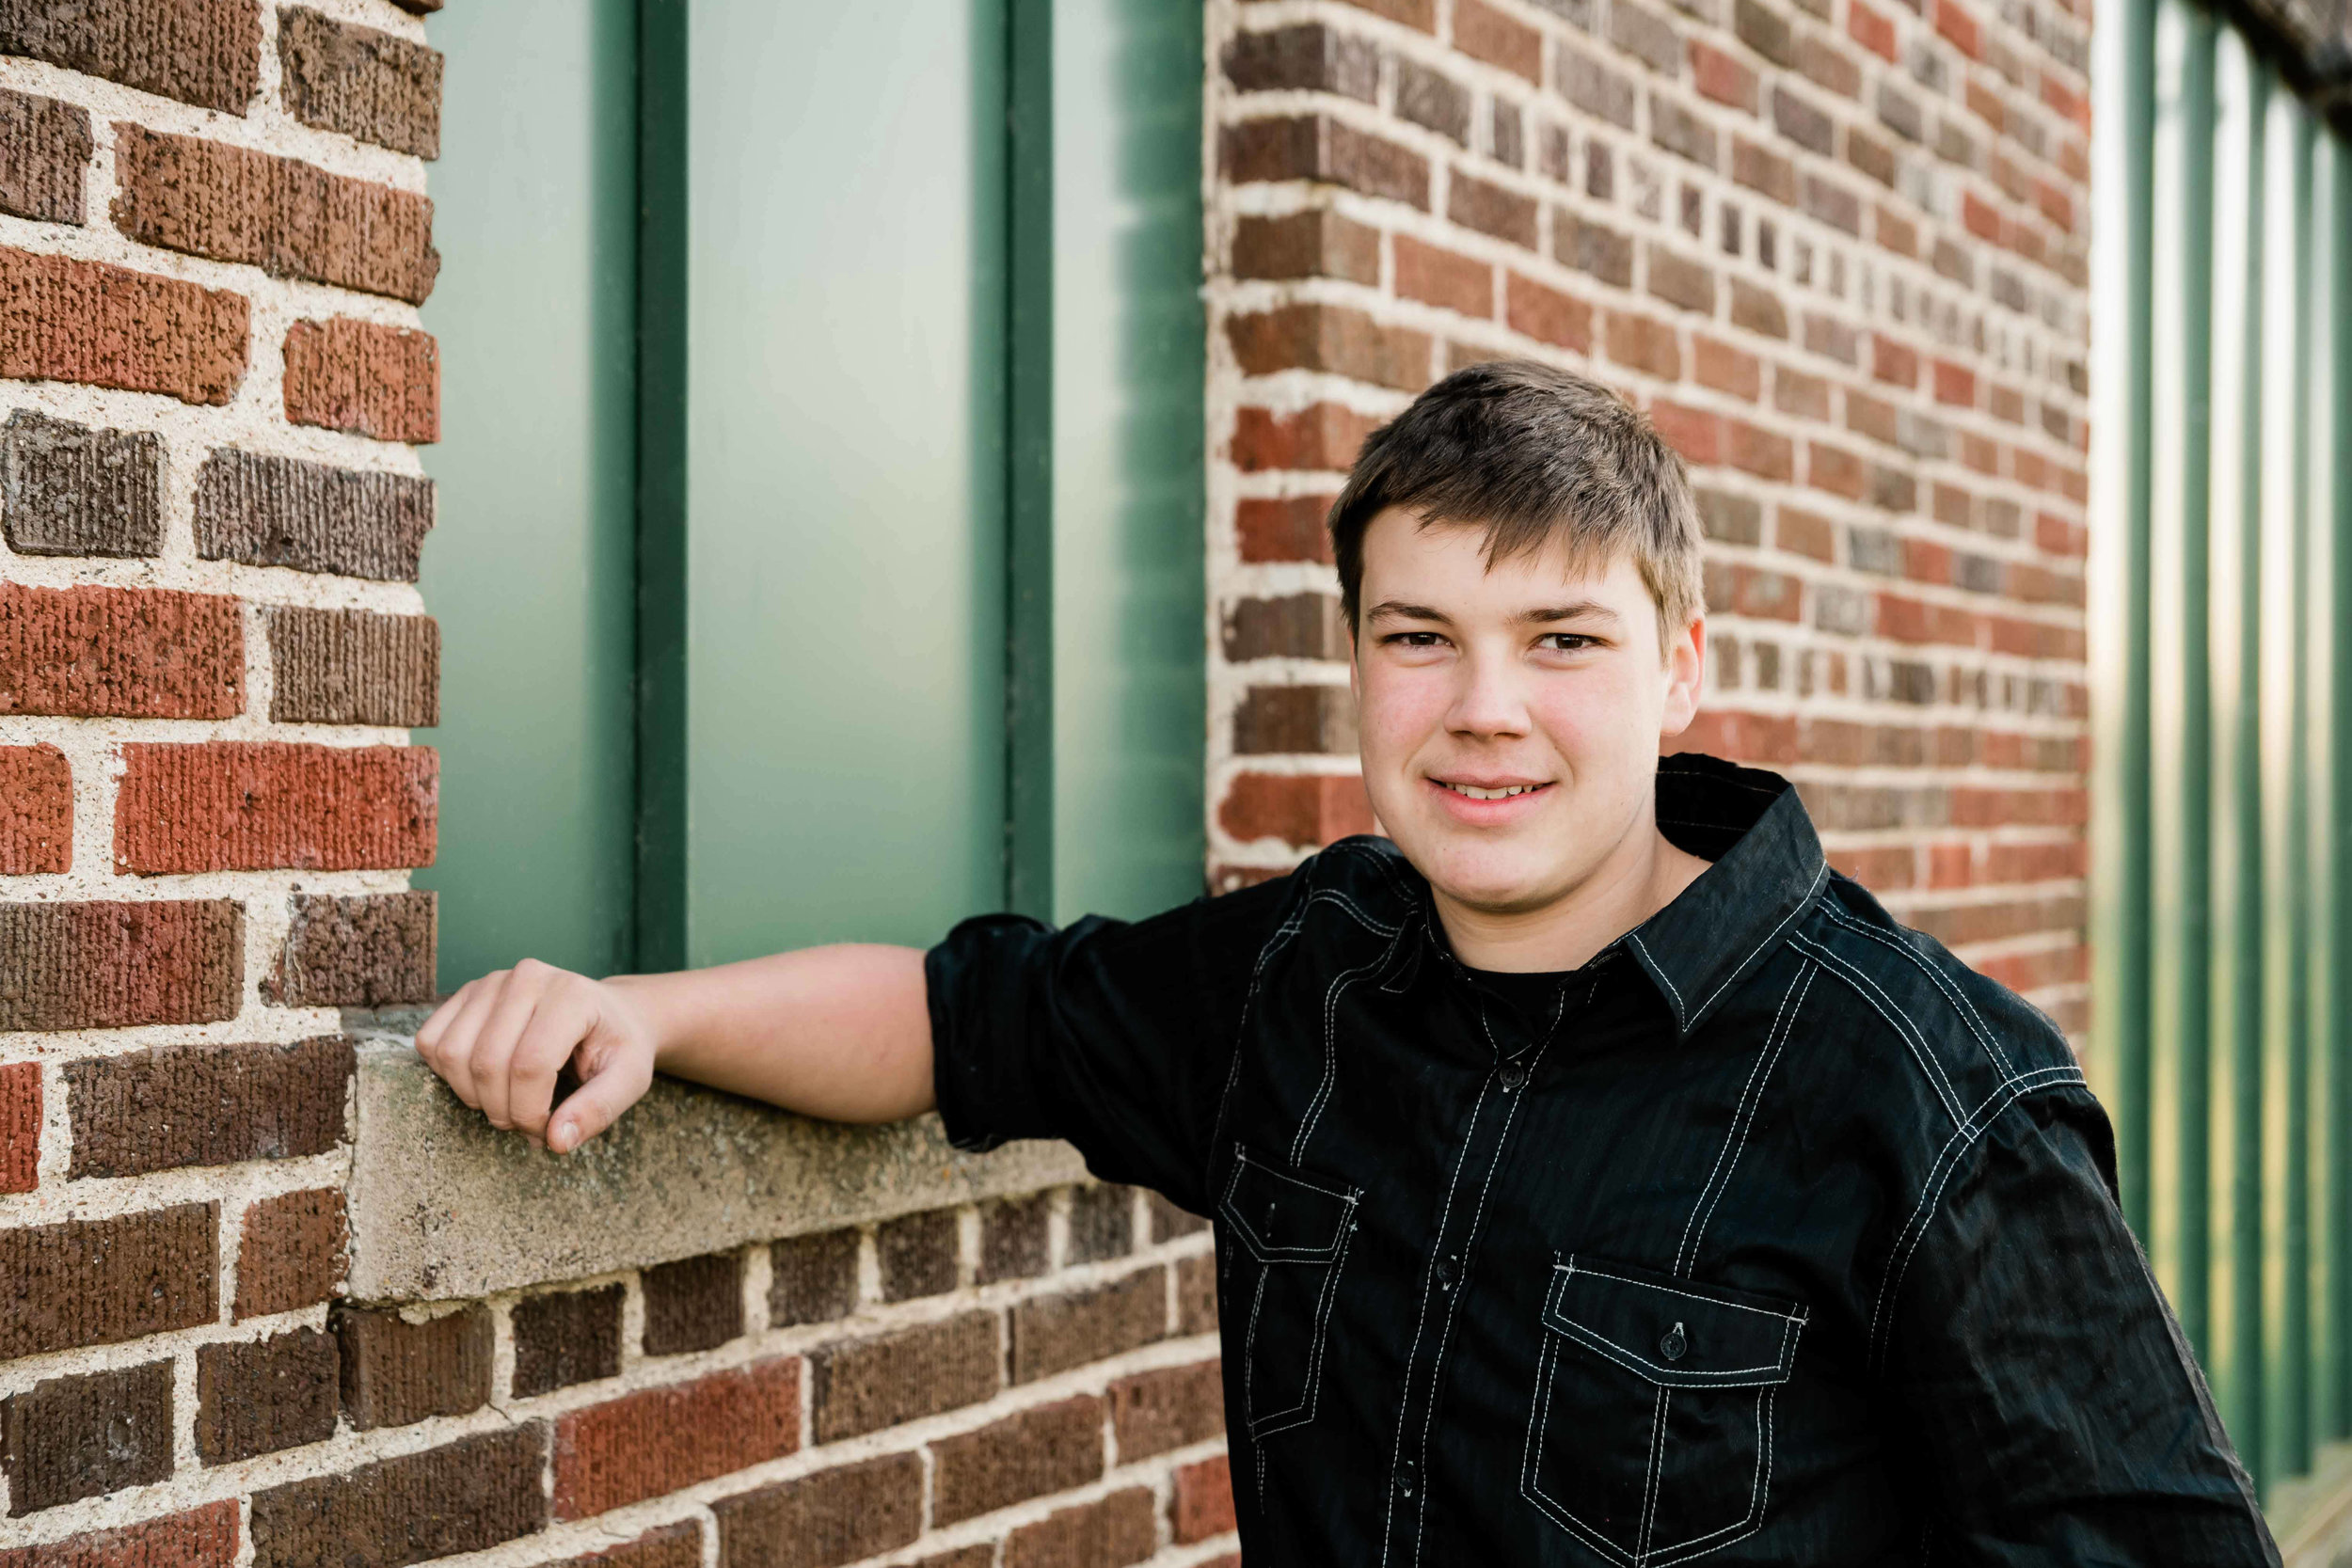 High school senior leans up against a brick building